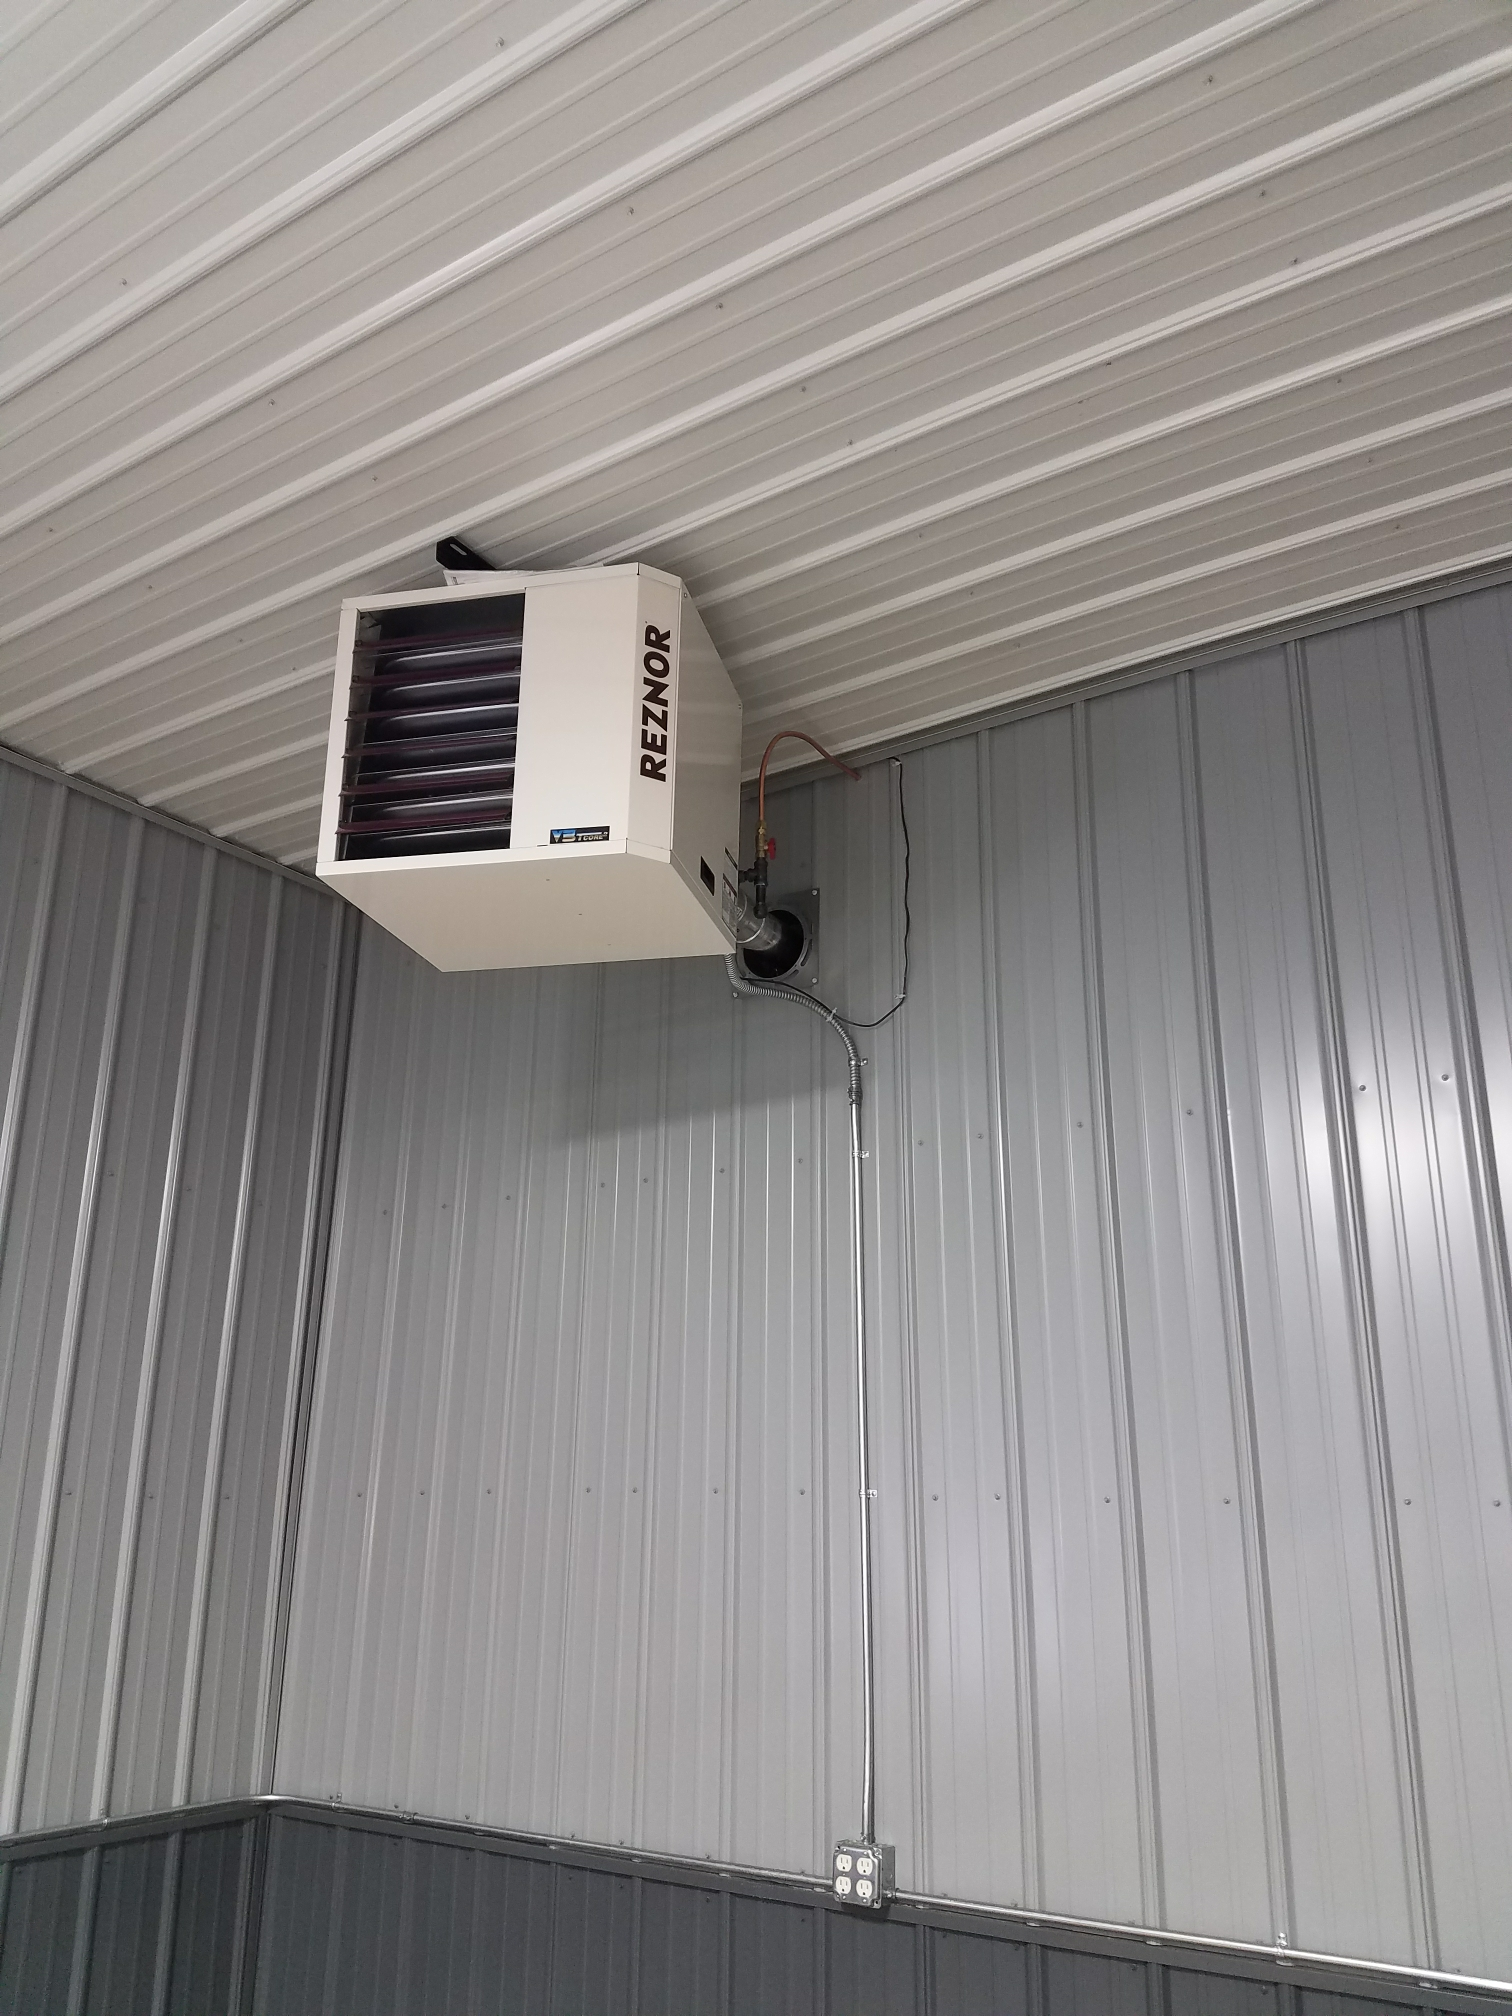 Rogers, MN - Installed reznor garage heater